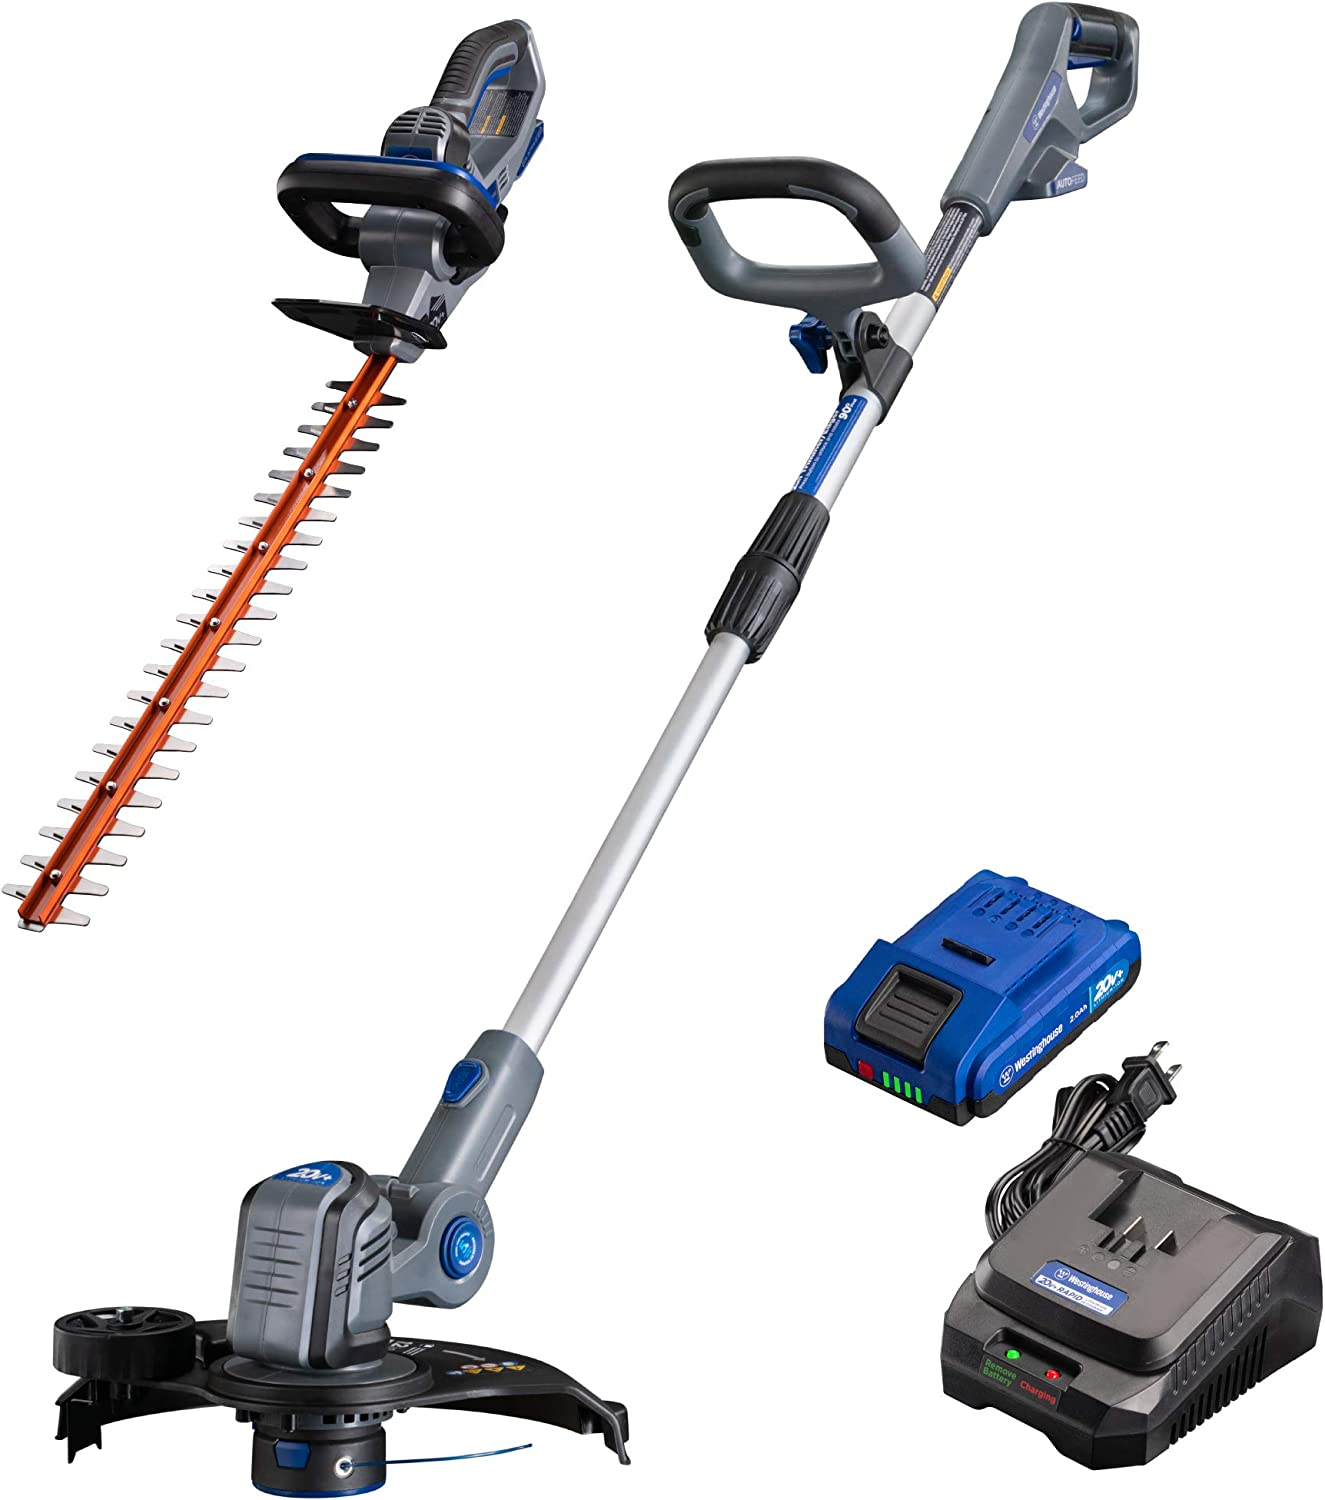 Westinghouse Cordless Hedge String Trimmer Edger, 2.0 Ah Battery and Rapid Charger Included